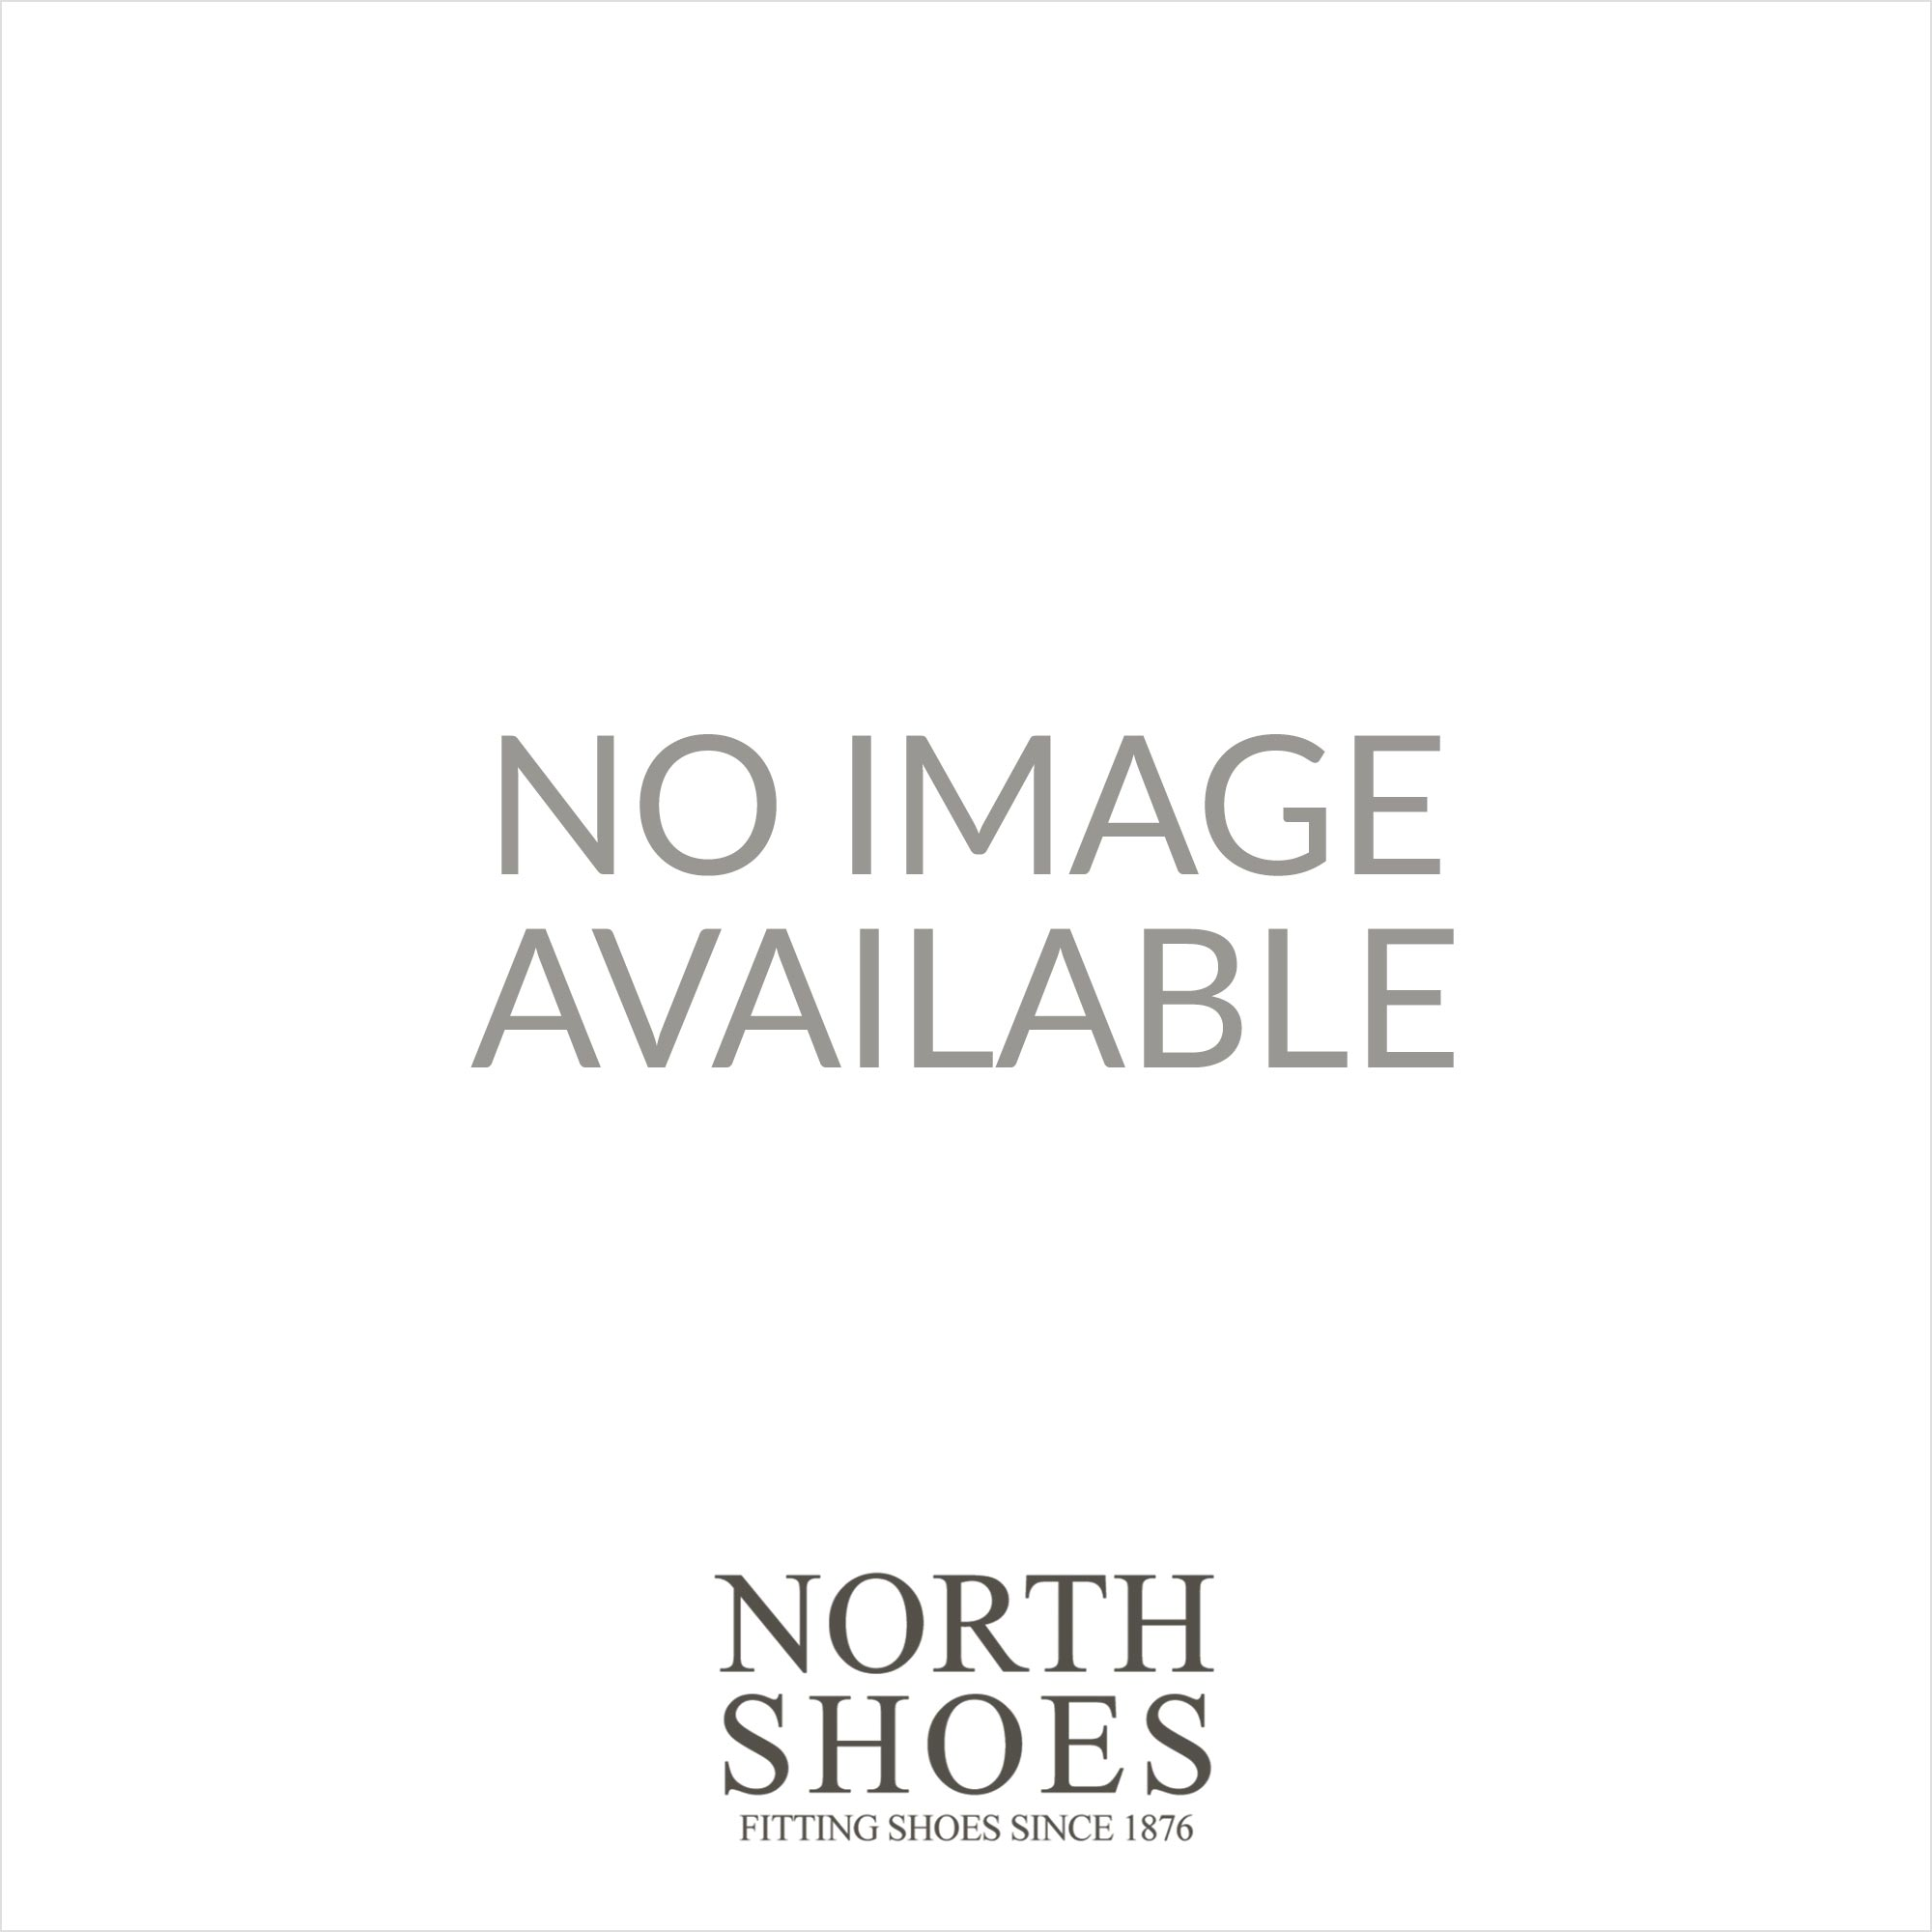 a5073b8db91 Clarks Cozily Warm Grey Womens Slip On Memory Foam Slippers - Clarks from North  Shoes UK